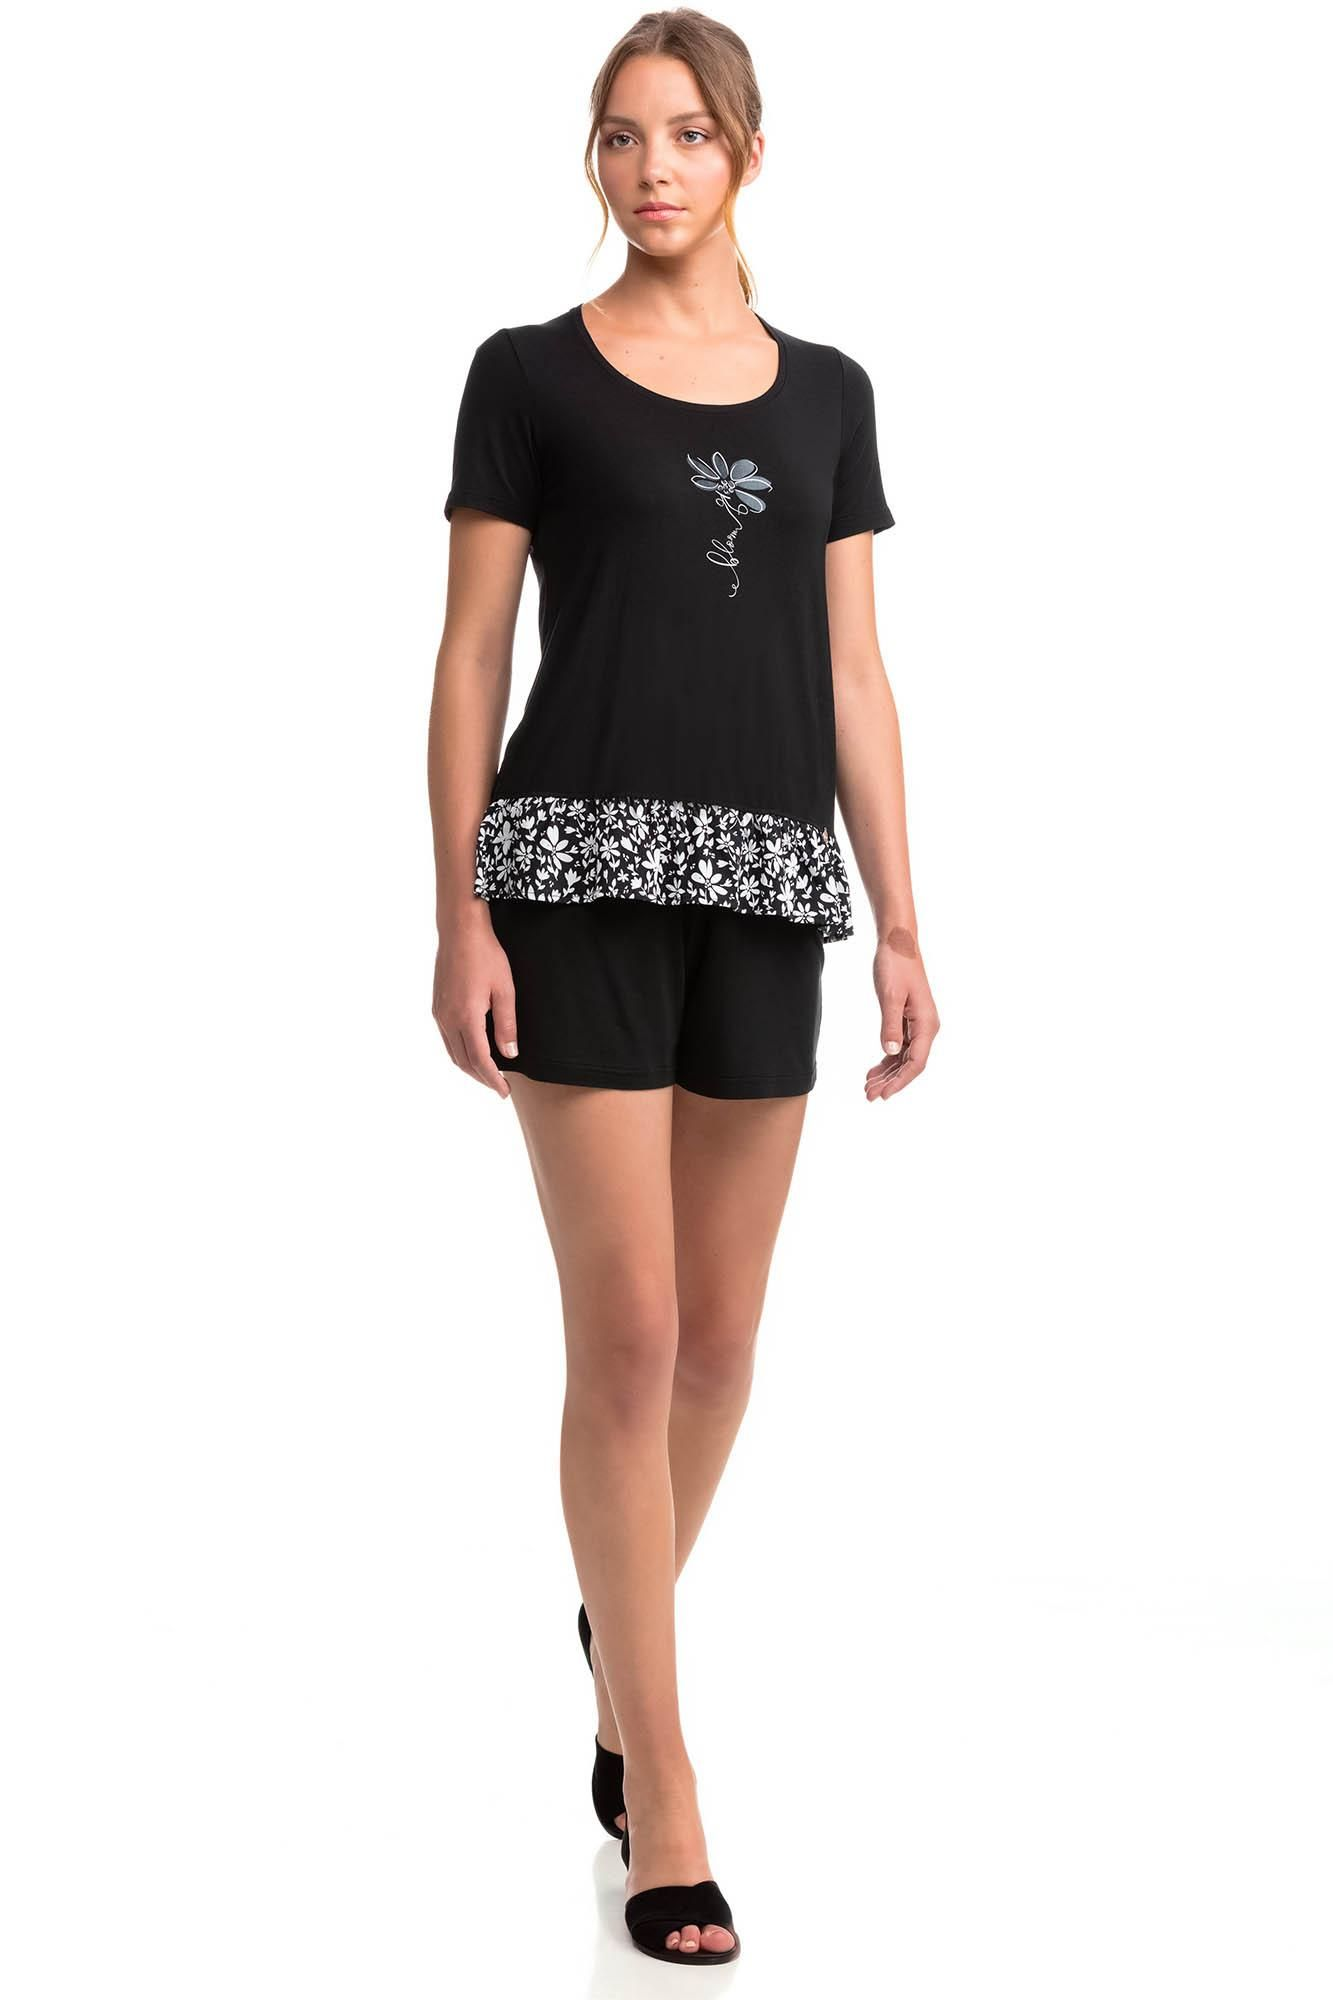 Women's Top and Shorts